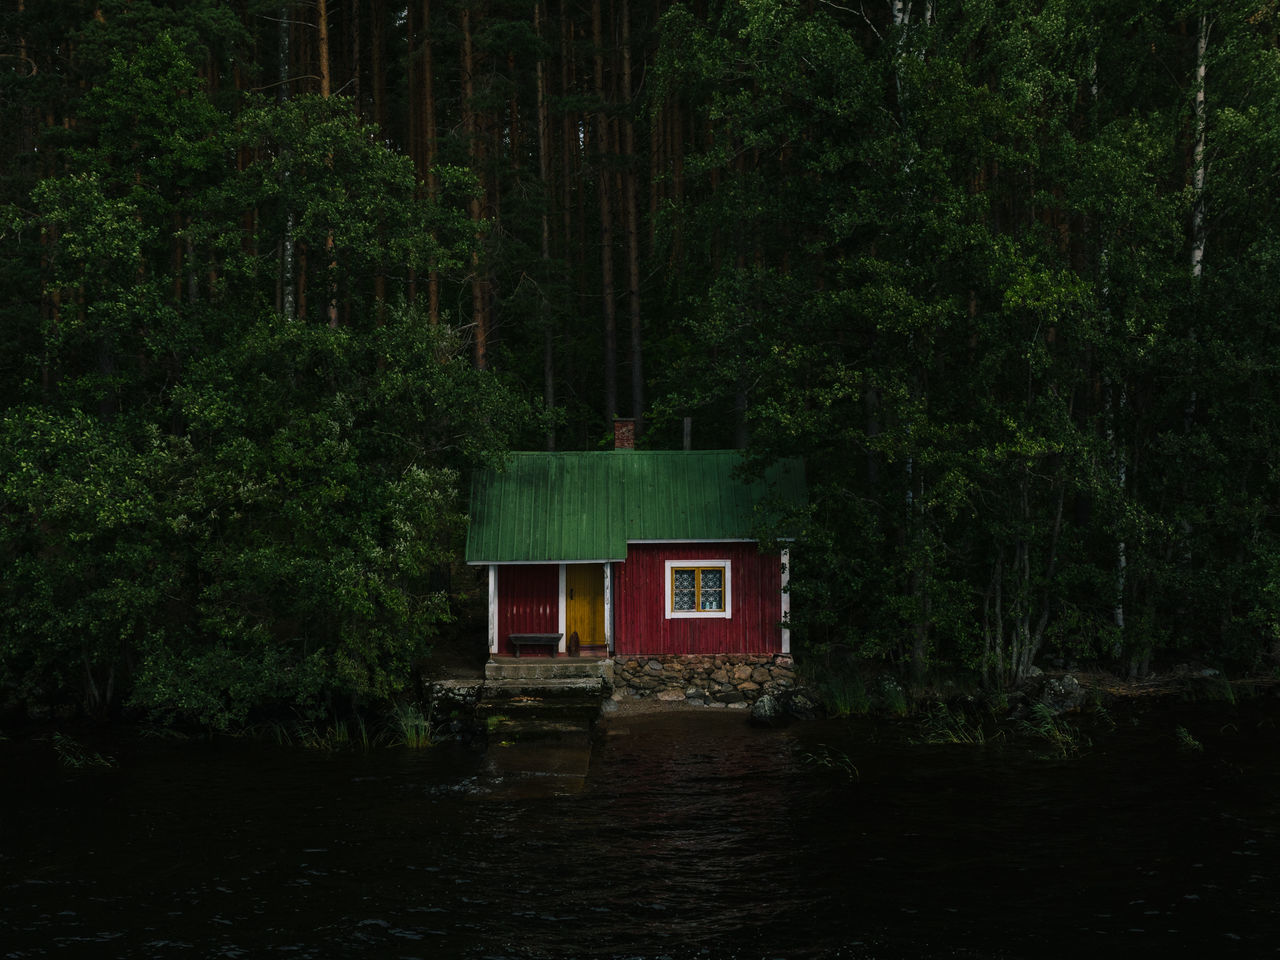 little house Beauty In Nature Finland Finn Green Color Haus Outdoors Red Rotes Rathaus Saimaa Sauna Scenics Tree